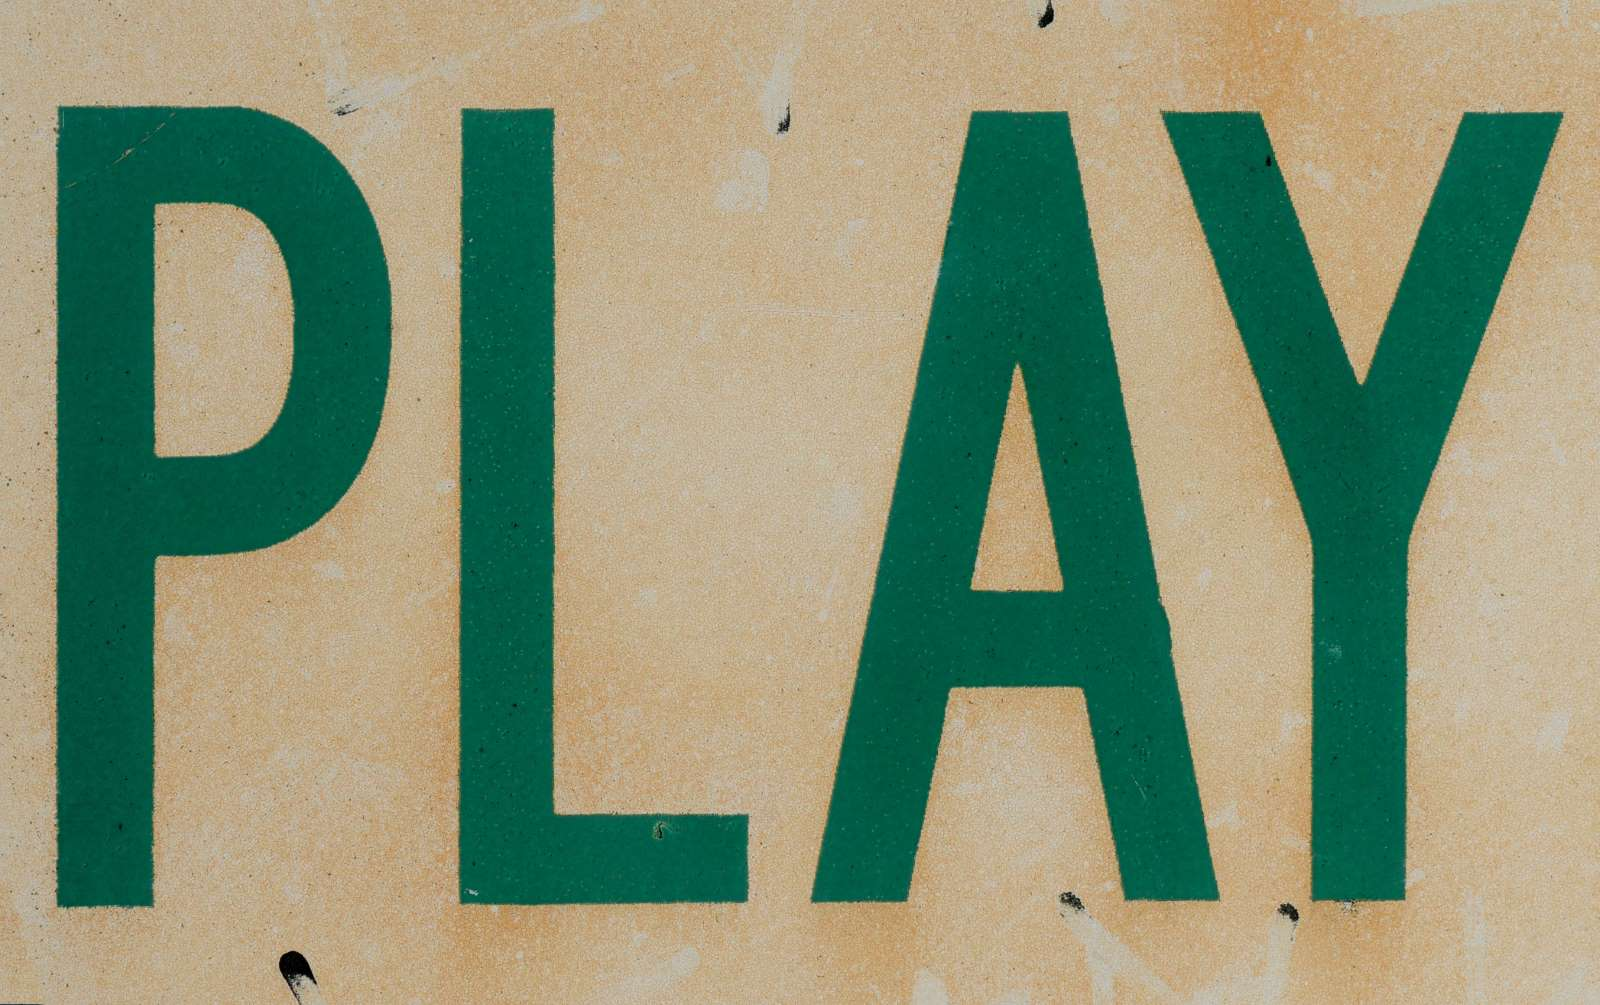 A sign saying PLAY. Photo by Ben Hershey.